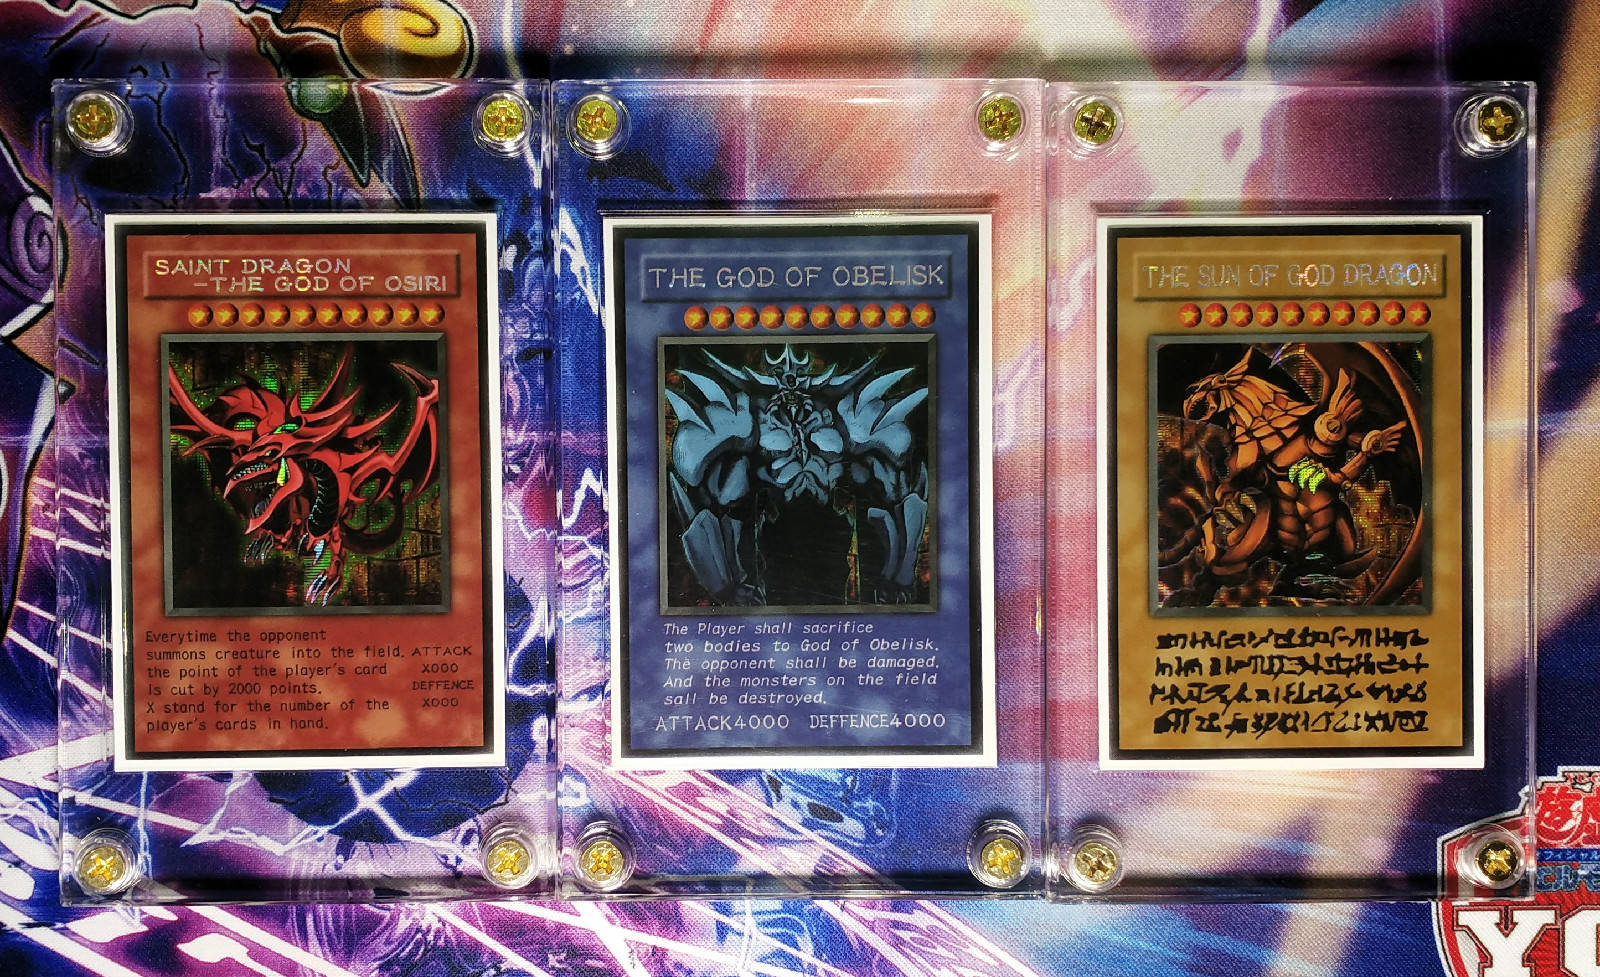 Yu Gi Oh Slifer the Sky Dragon Obelisk the Tormentor DIY Colorful Toys Hobbies Hobby Collectibles Game Collection Anime Cards